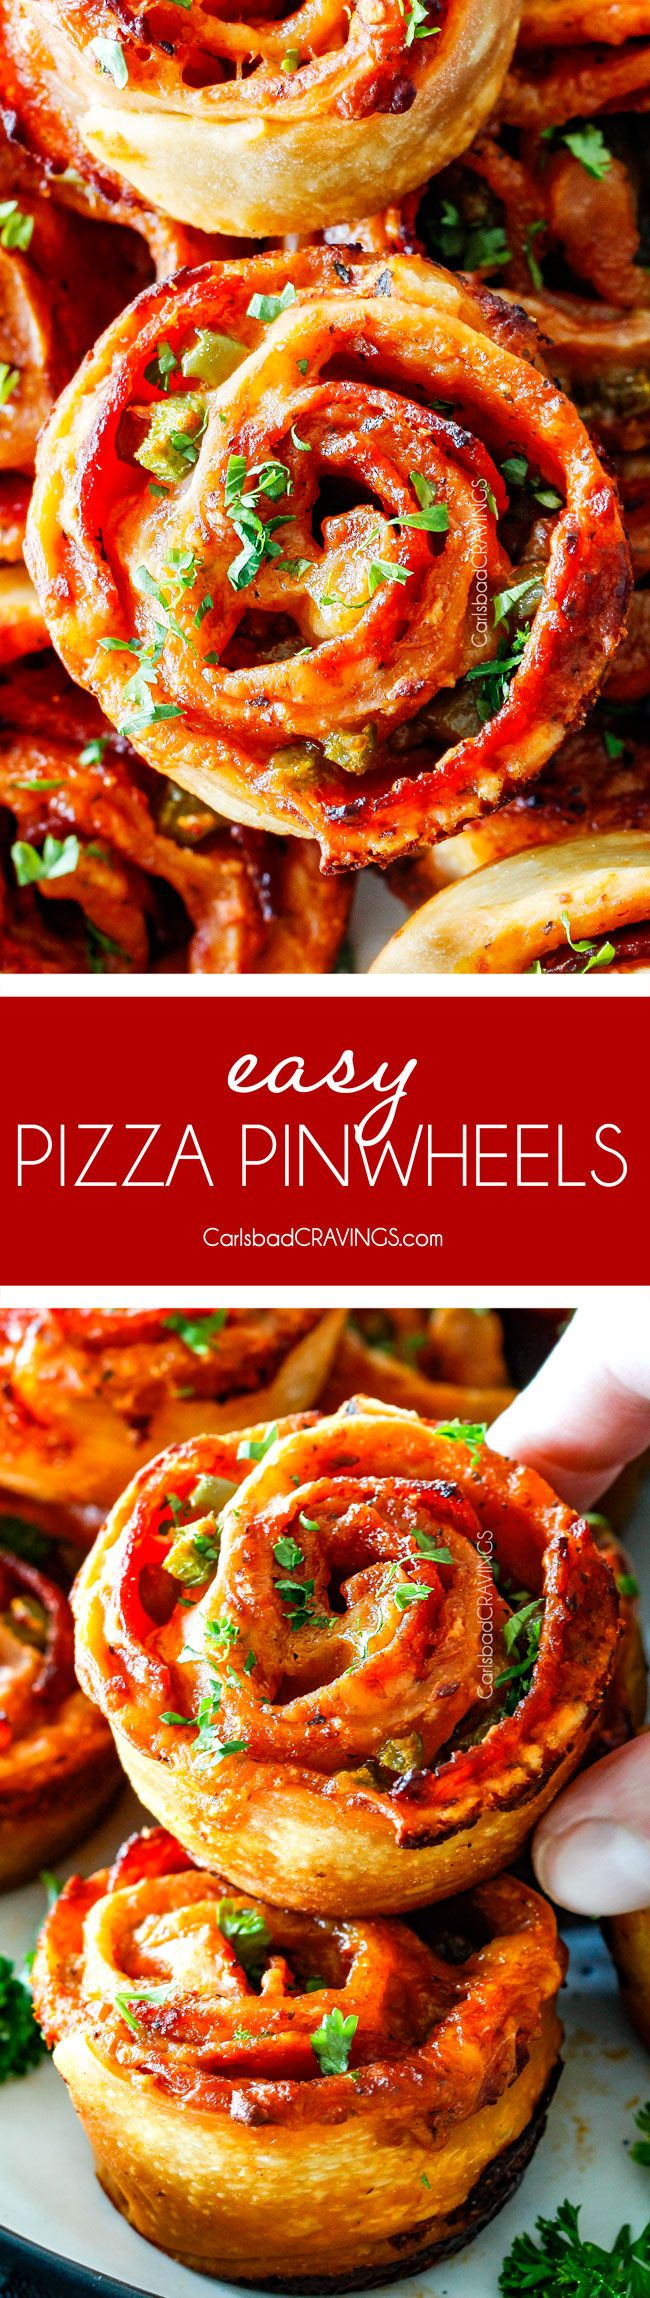 These Pizza Pinwheels are super easy to make, customizable, freeze beautifully, and absolutely irresistible for snacks, appetizers or fun meals! You friends and family will beg you to make these! via @carlsbadcraving